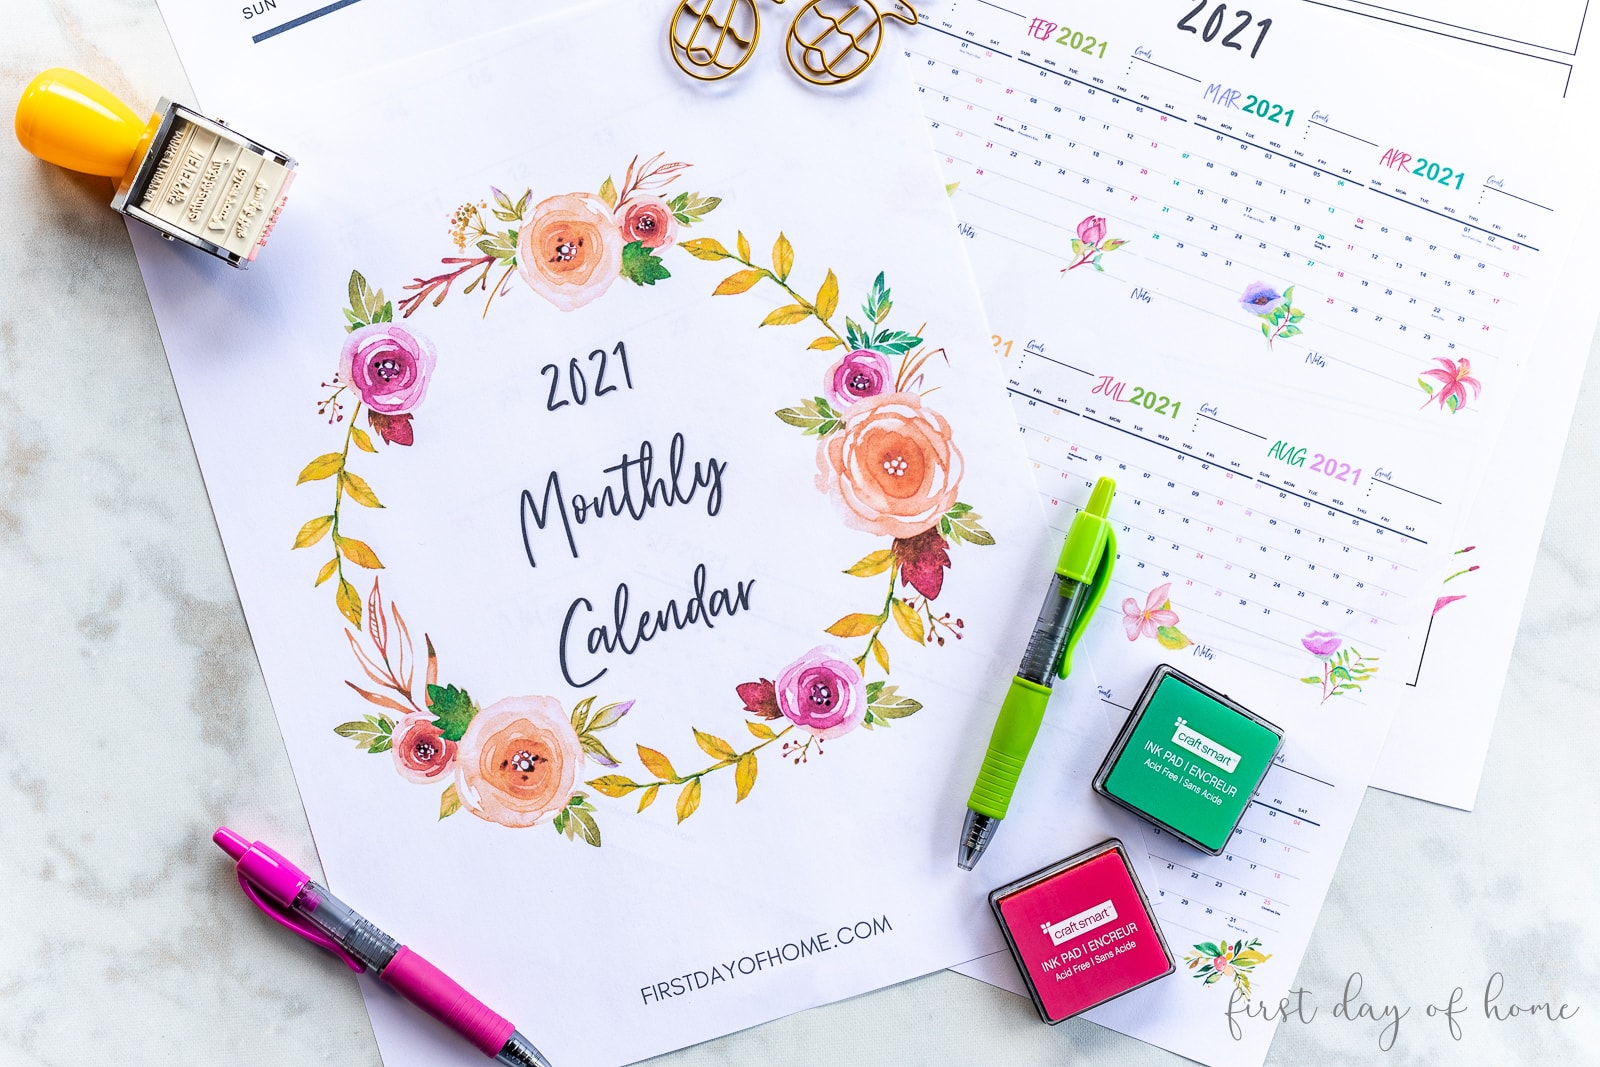 2021 calendar printable with colored pens, ink pads and stamps